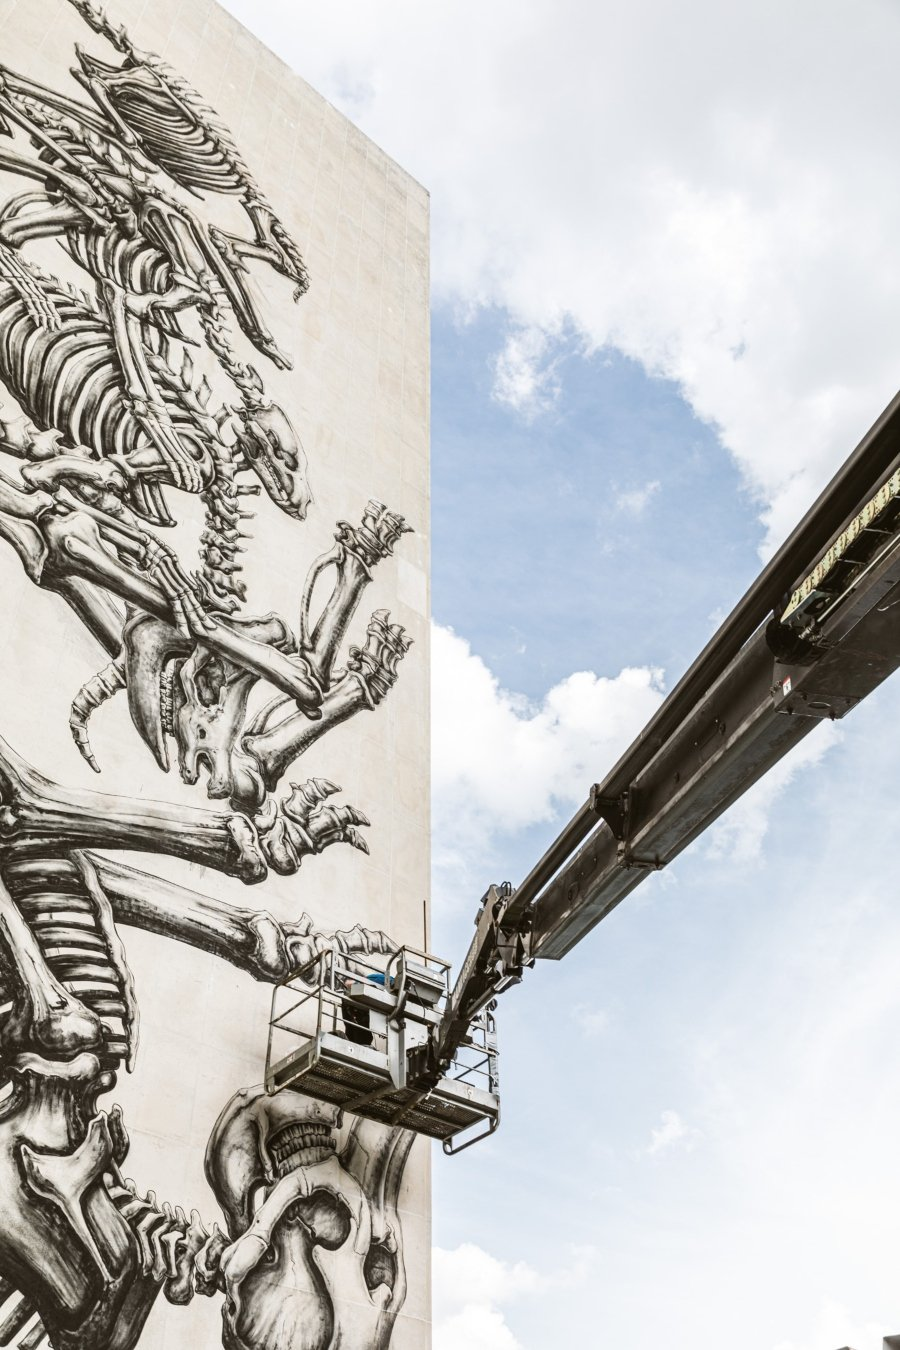 ROA created new mural at Ghent University Museum